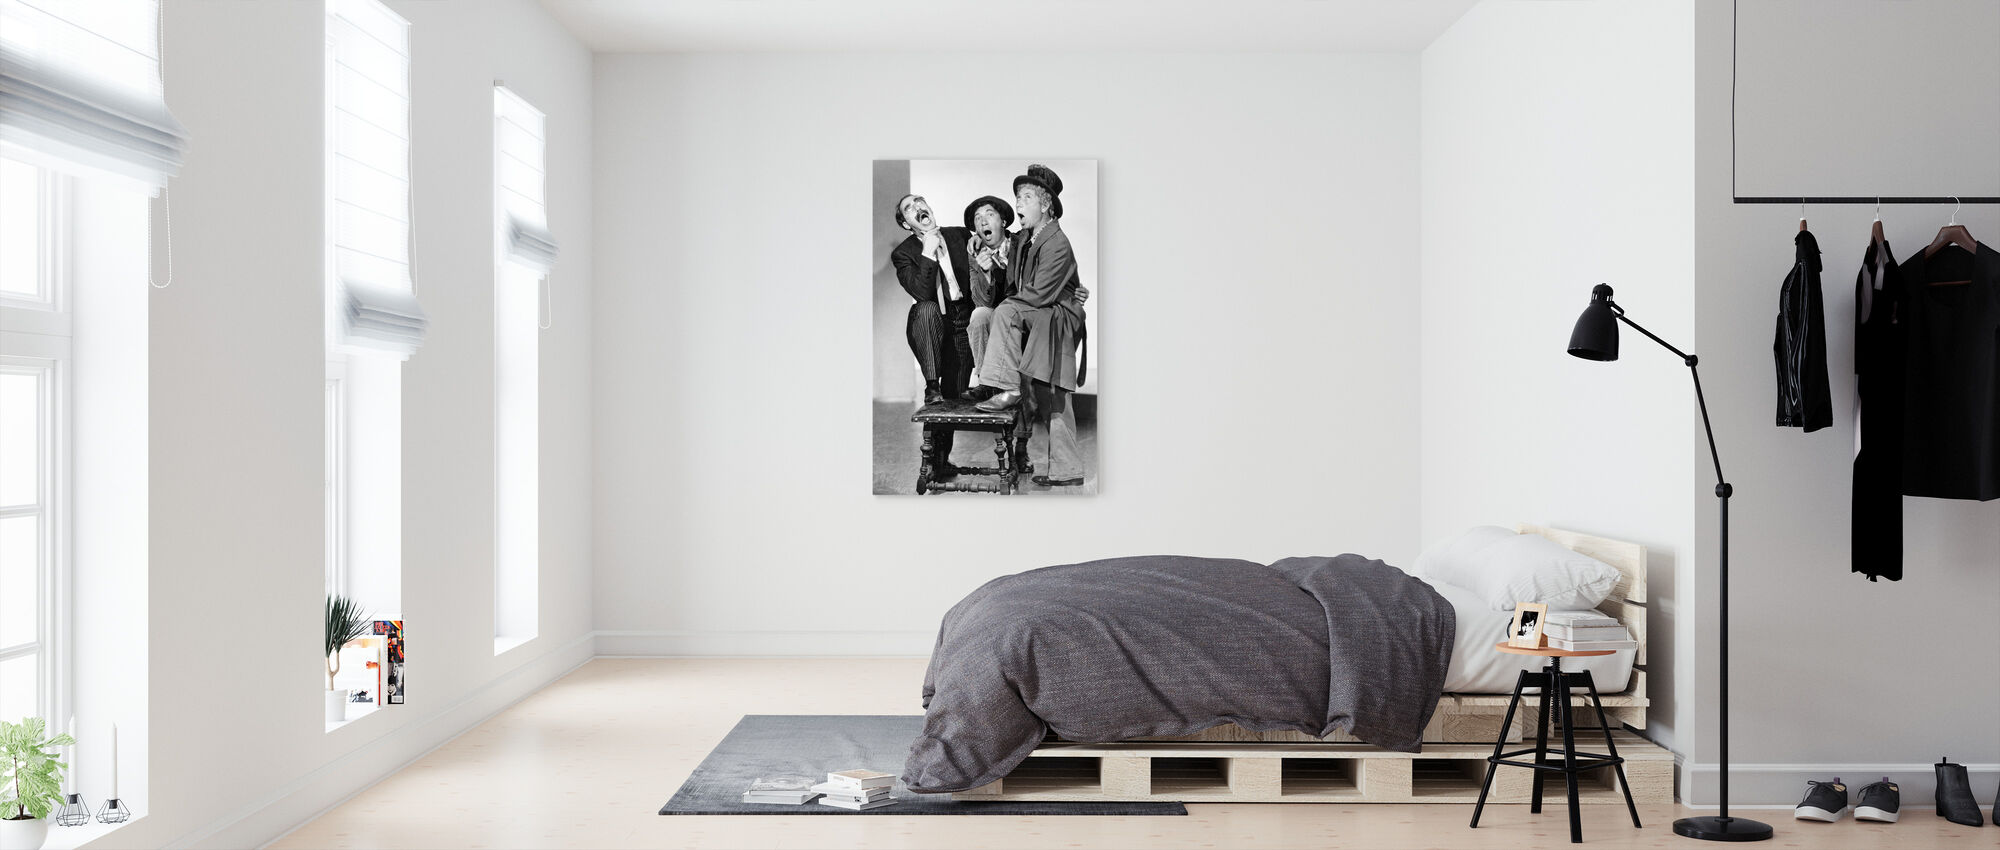 A Night at the Opera - Canvas print - Bedroom